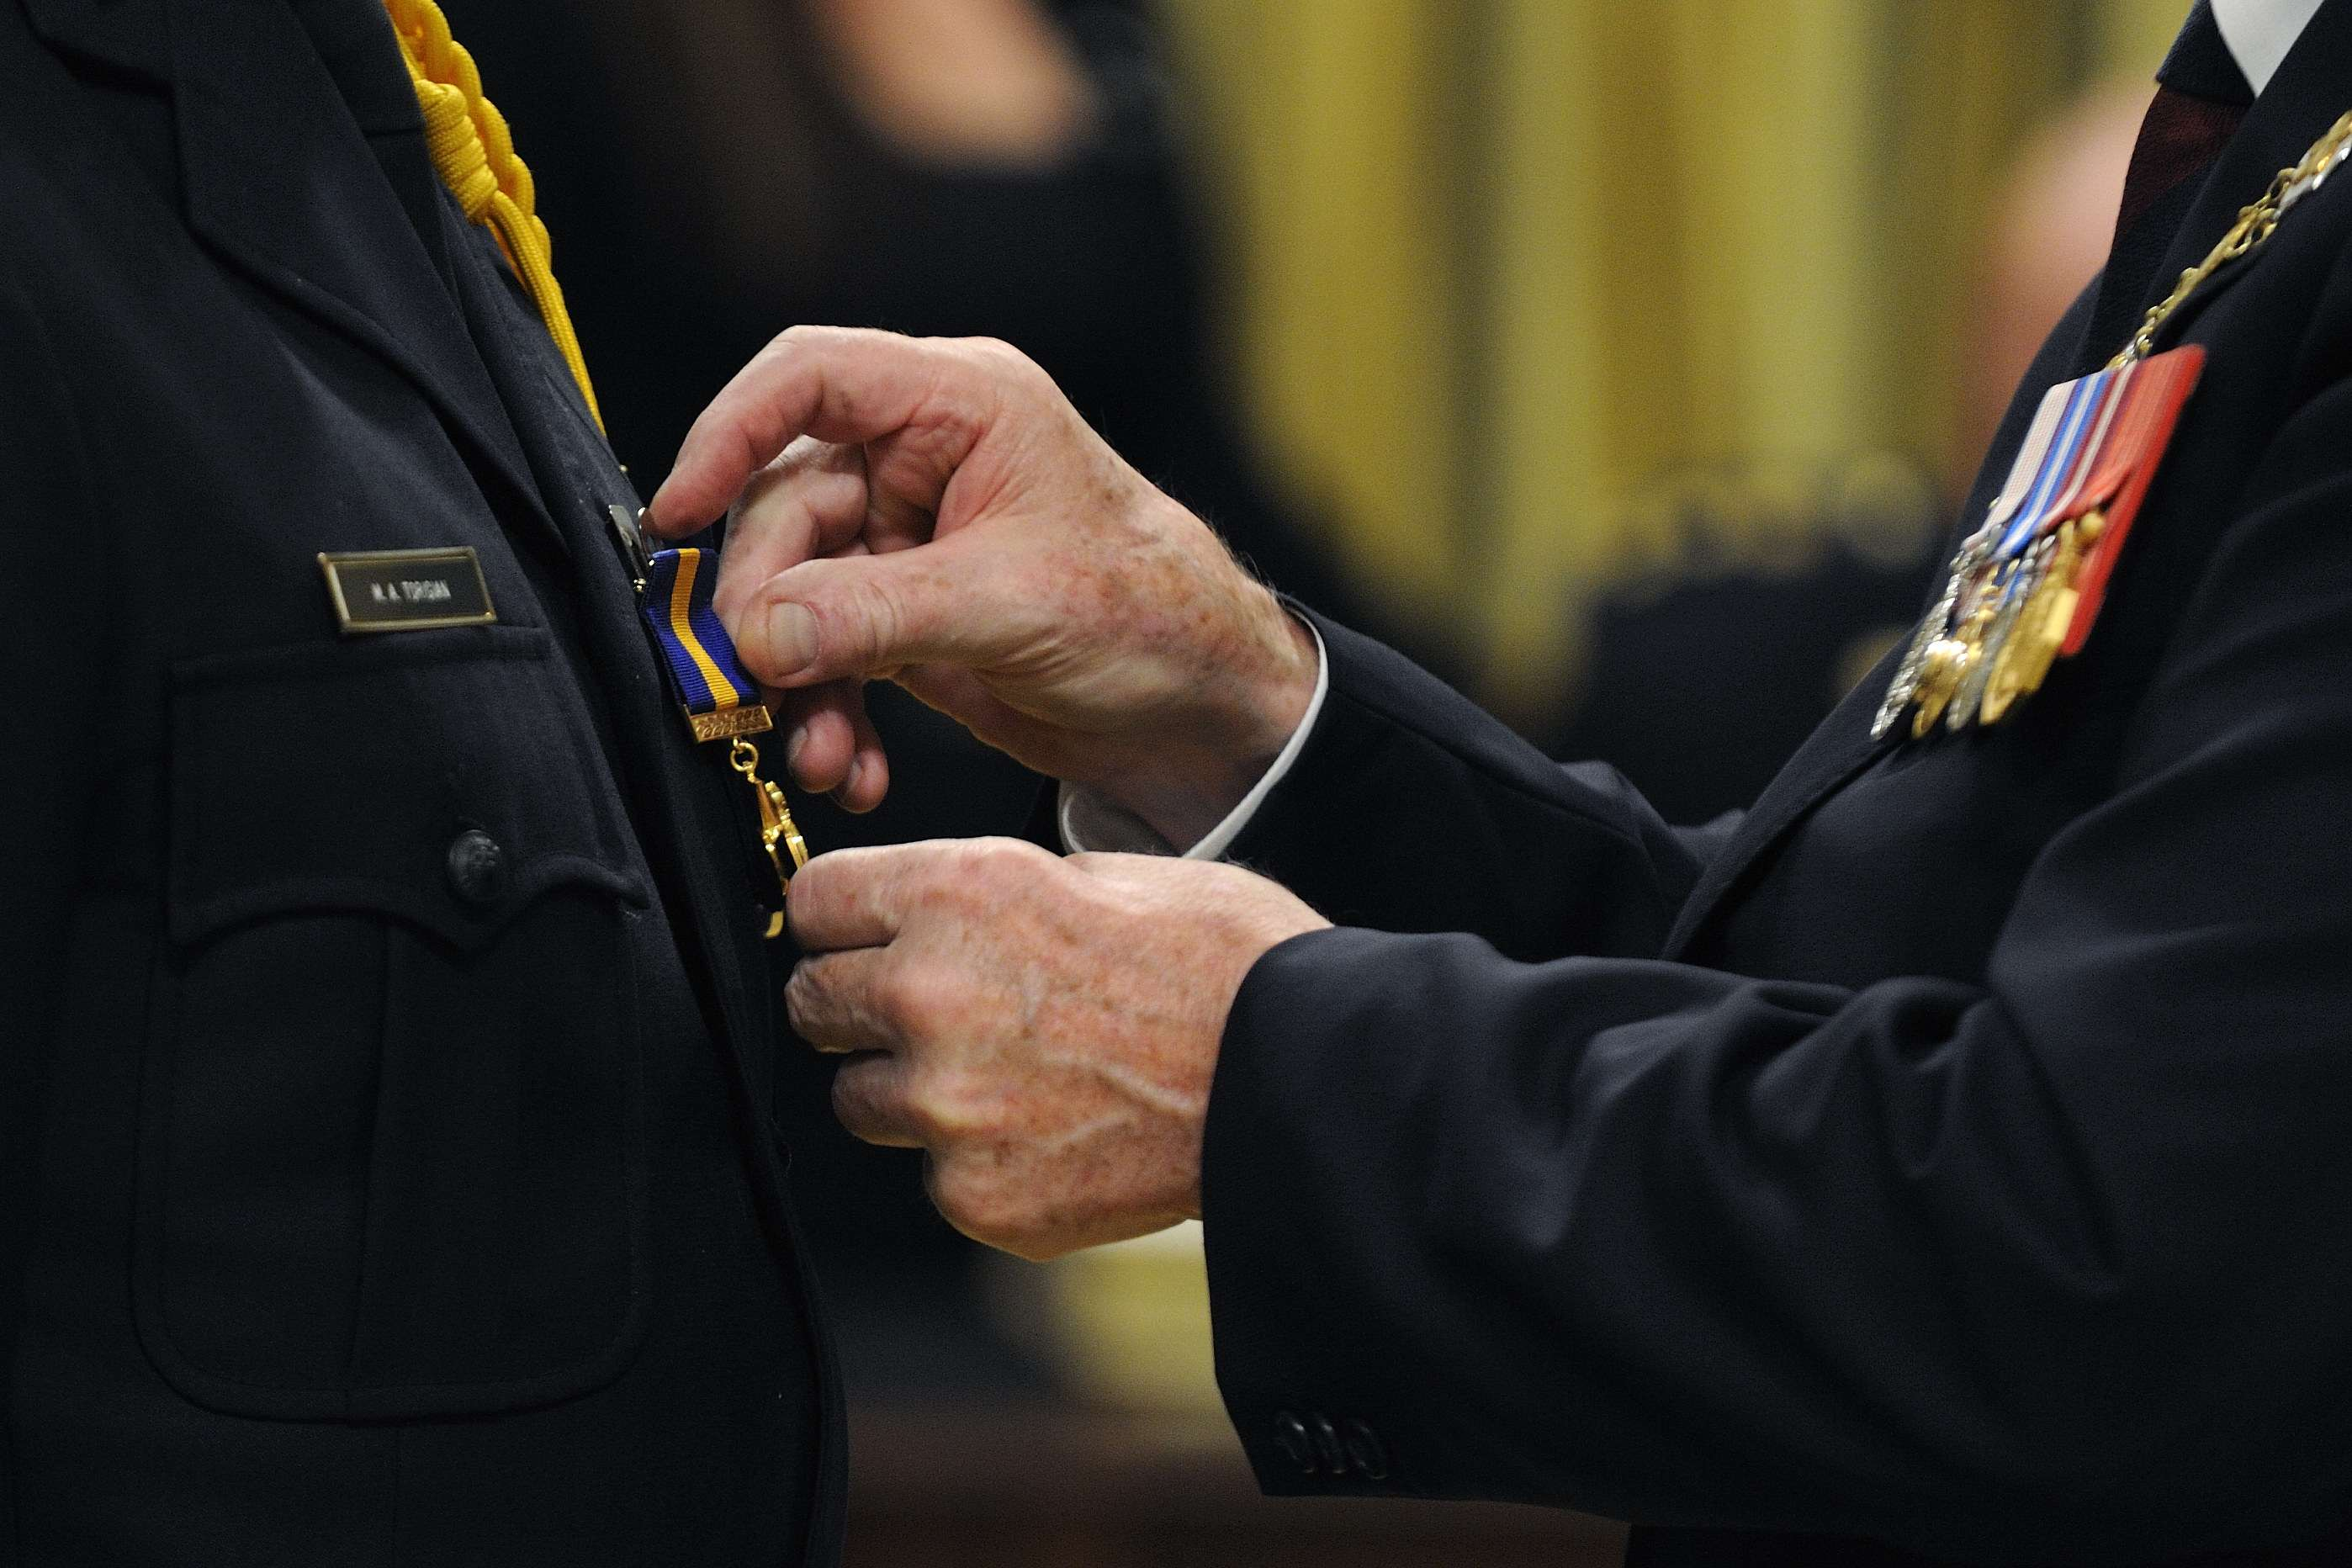 The Order of Merit of the Police Forces was created in 2000, to recognize conspicuous merit and exceptional service by members and employees of the Canadian police forces whose contributions extend beyond protection of the community. Three levels of membership with post-nominal letters reflect long-term, outstanding service: Commander (C.O.M.), Officer (O.O.M.) and Member (M.O.M.).